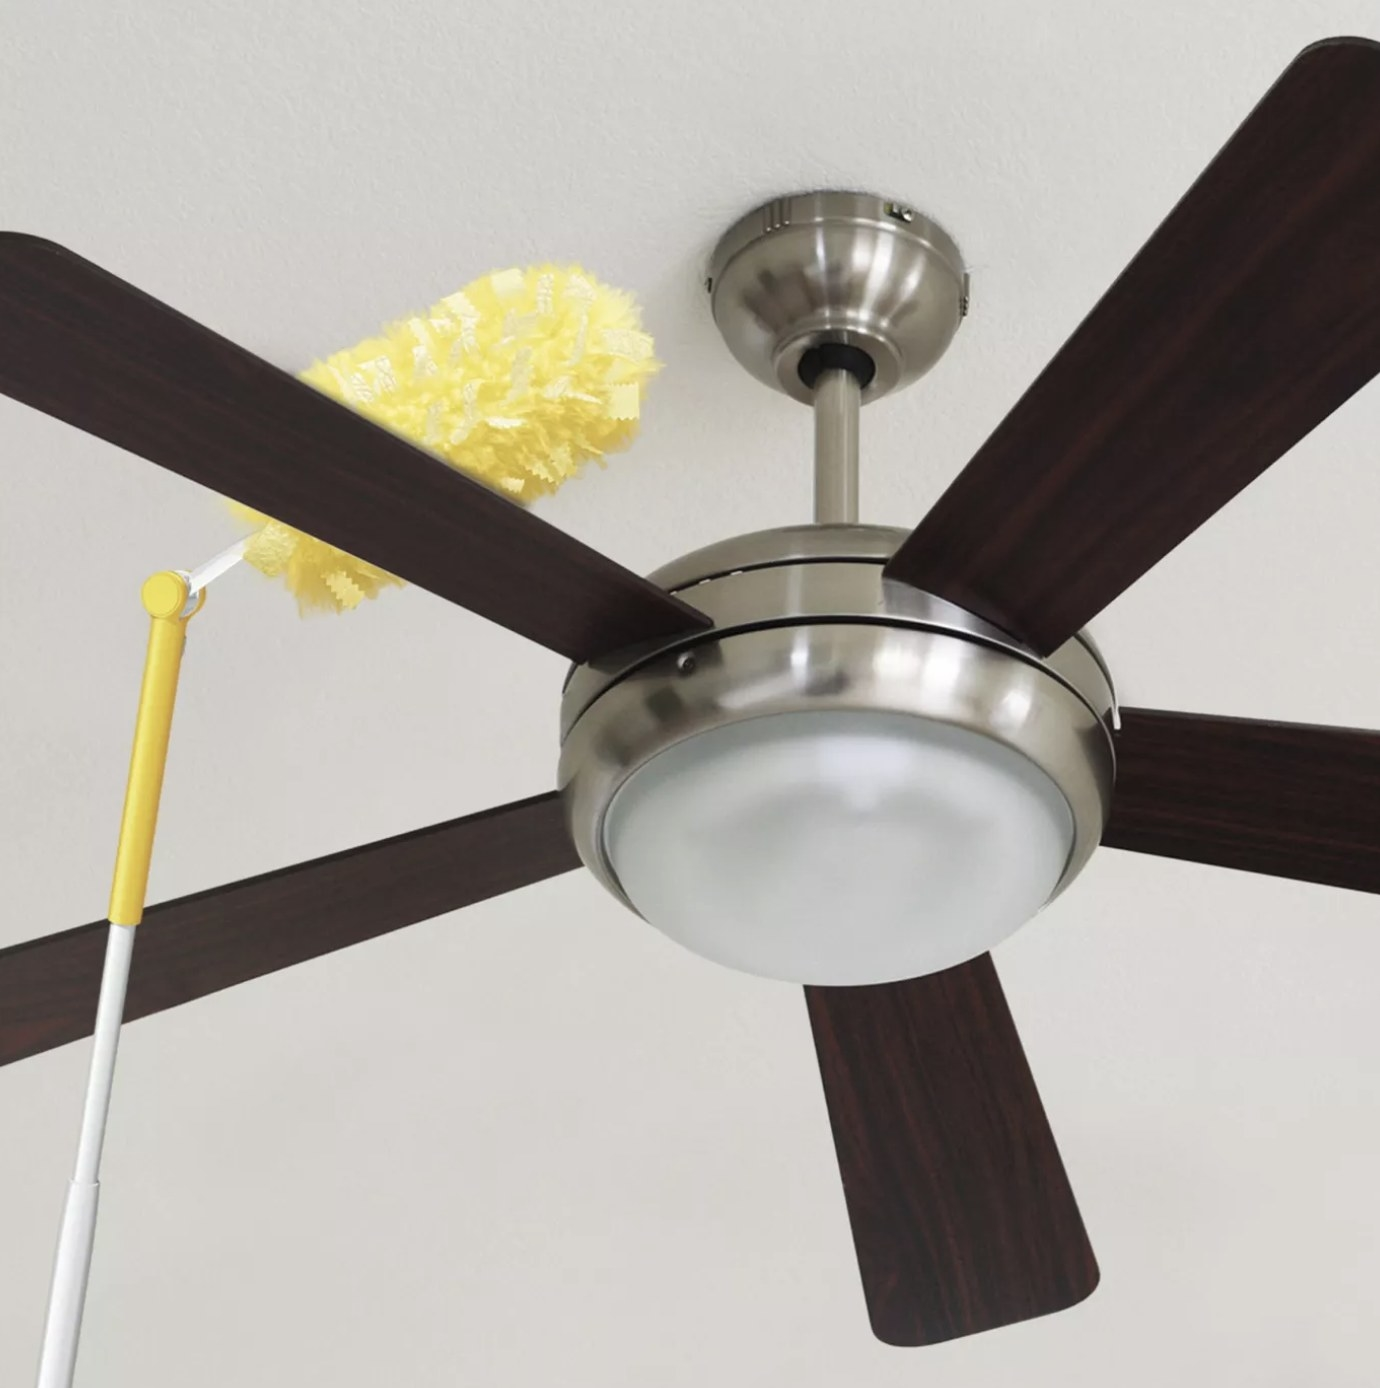 Yellow duster extends over the side of a brown fan to remove dust